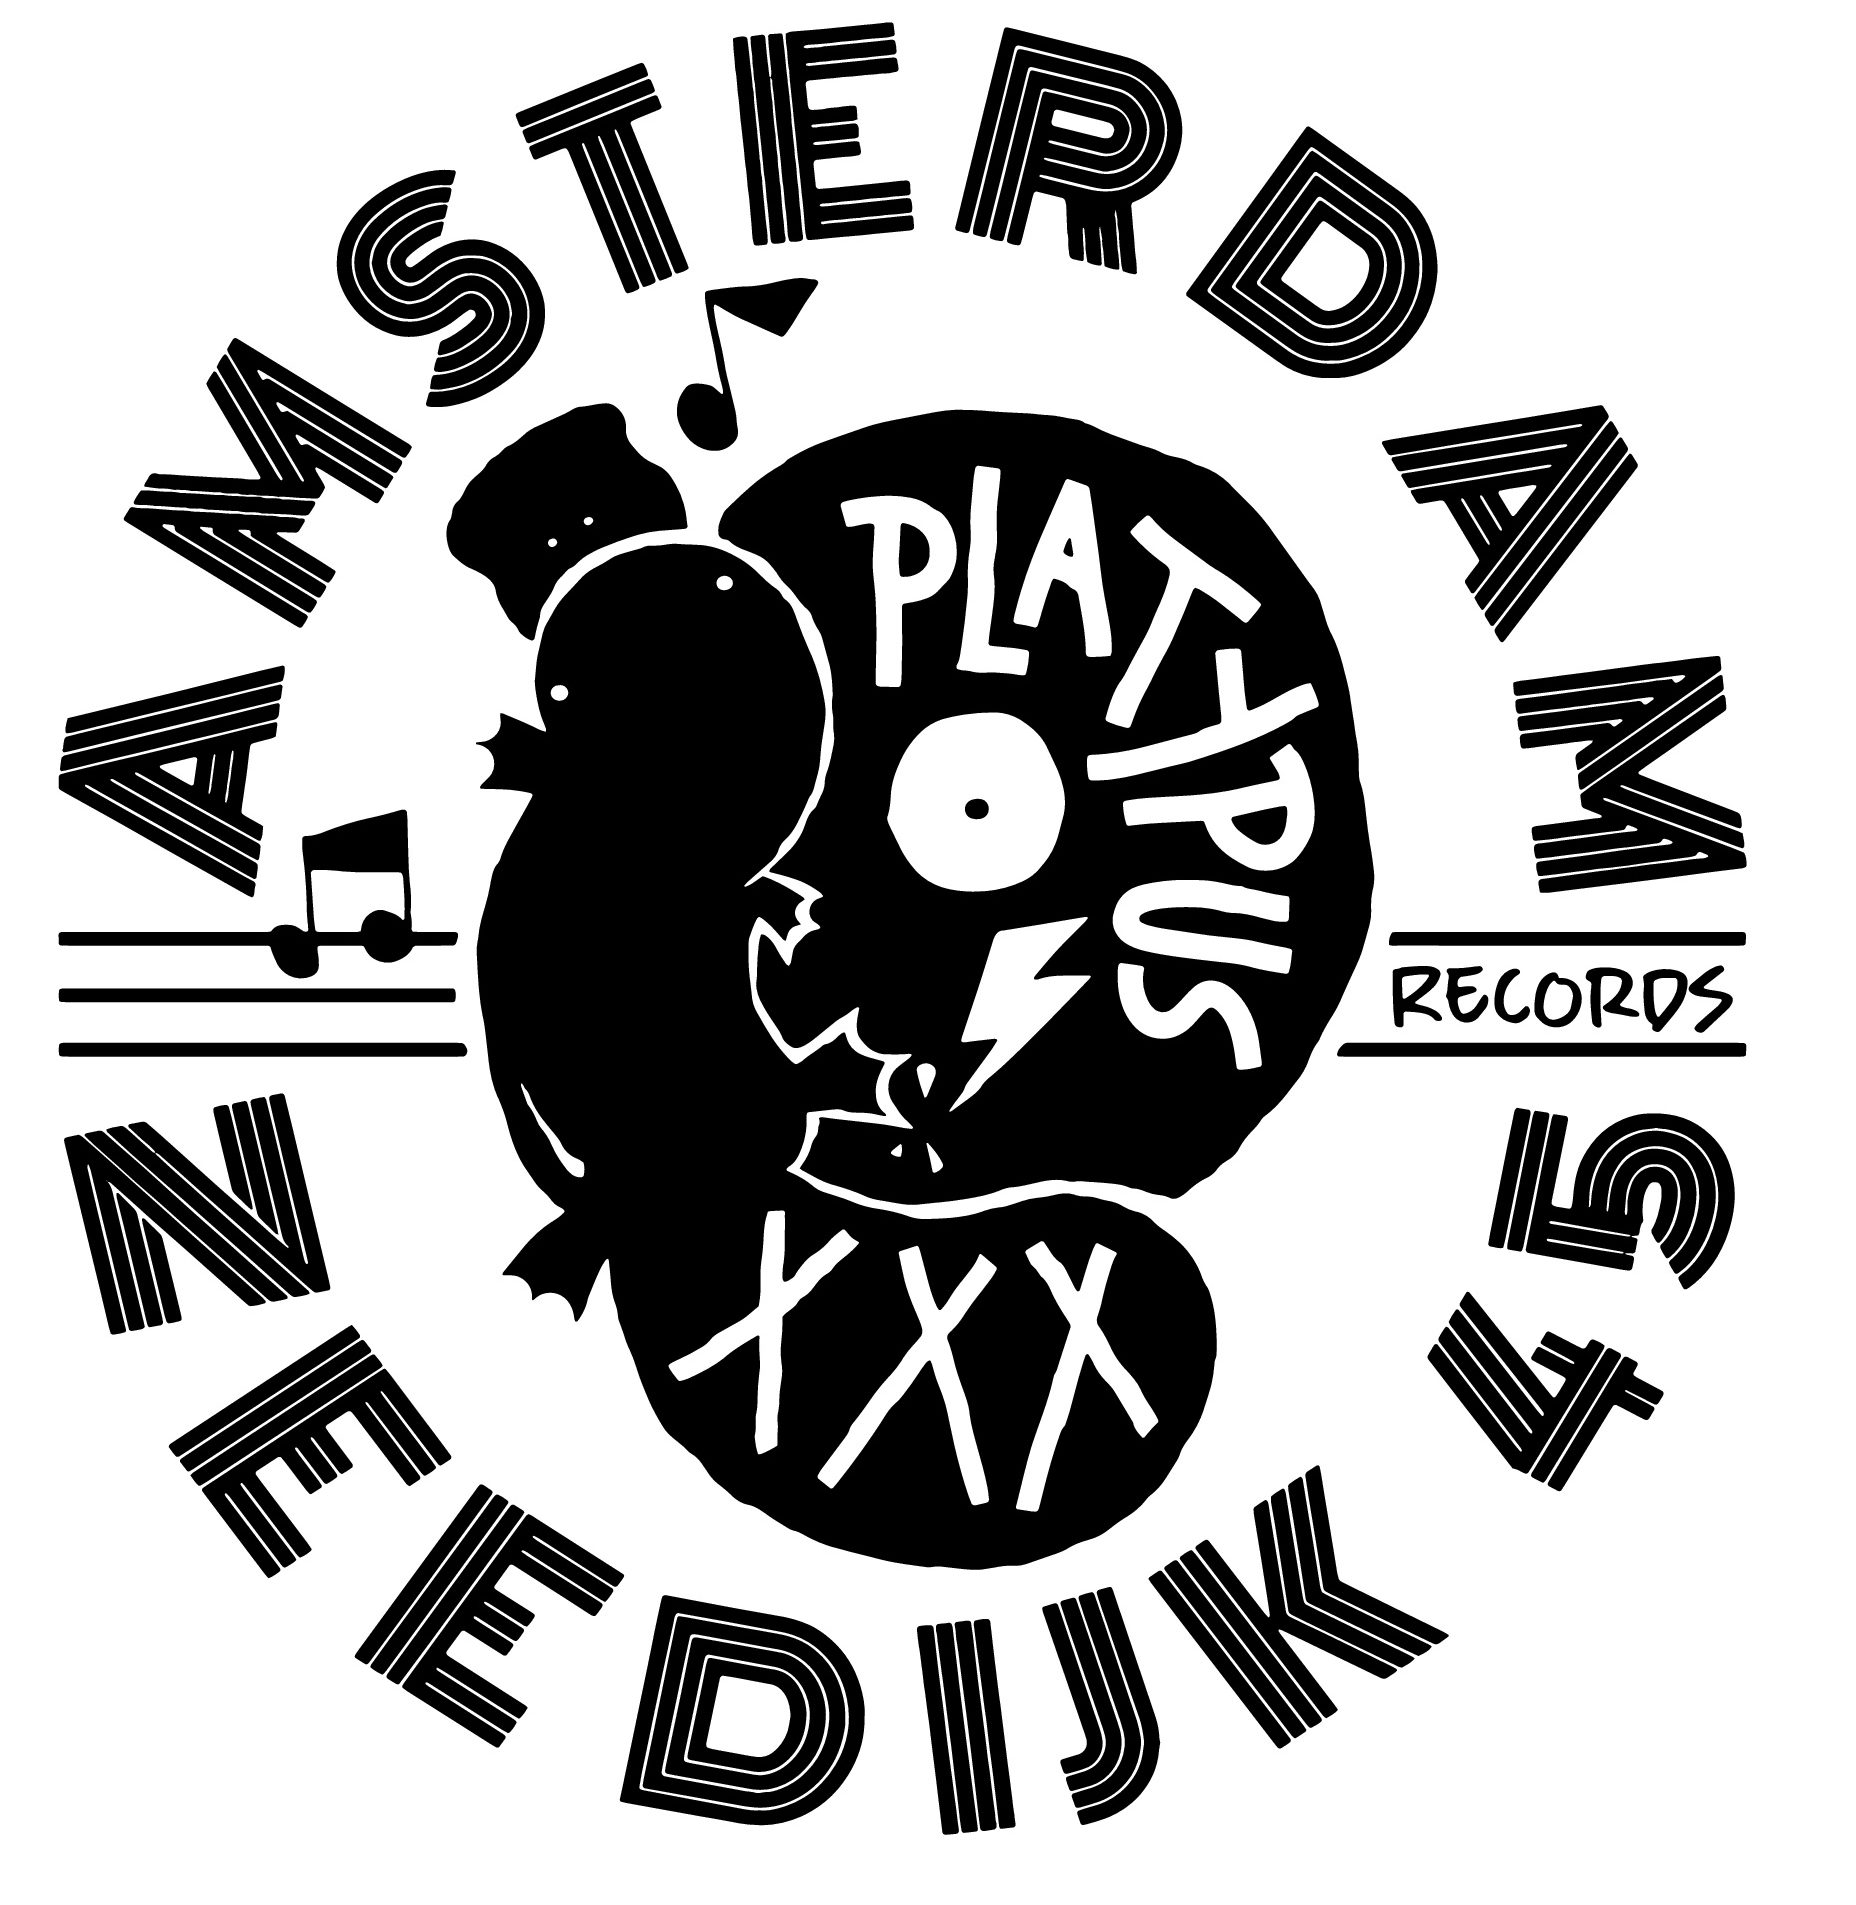 Platypusrecords